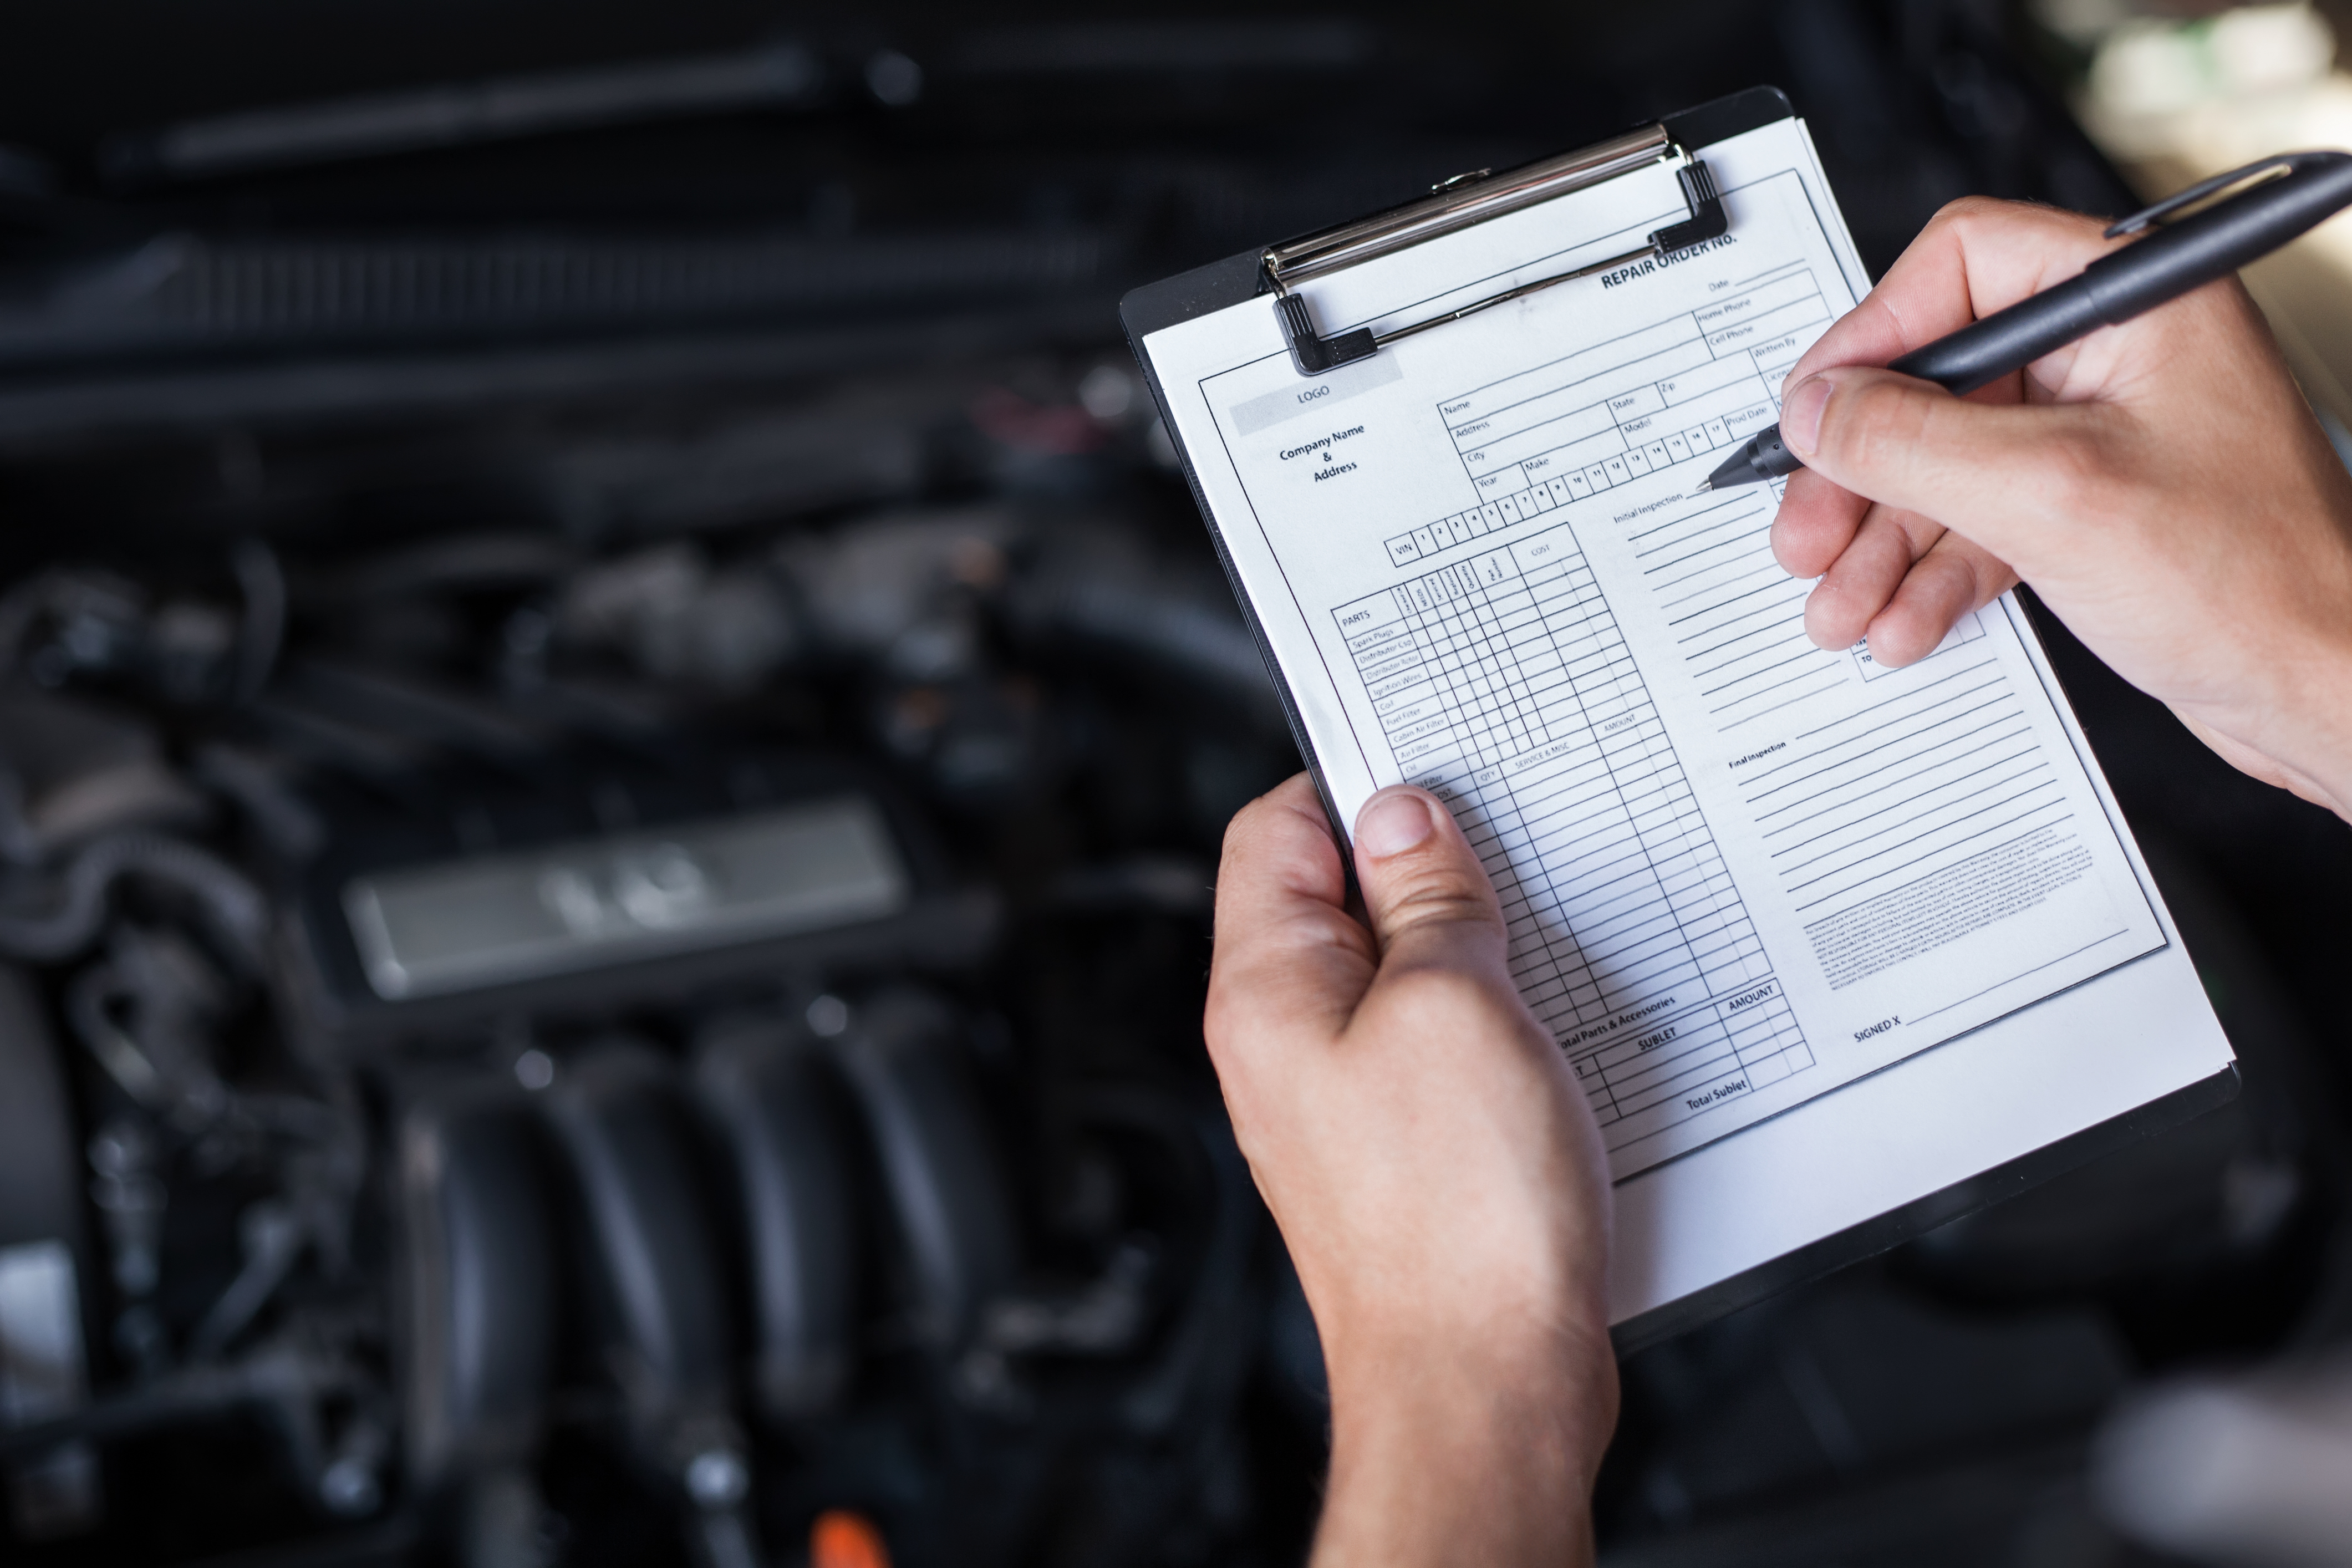 Vehicle inspection checklist with car engine in background